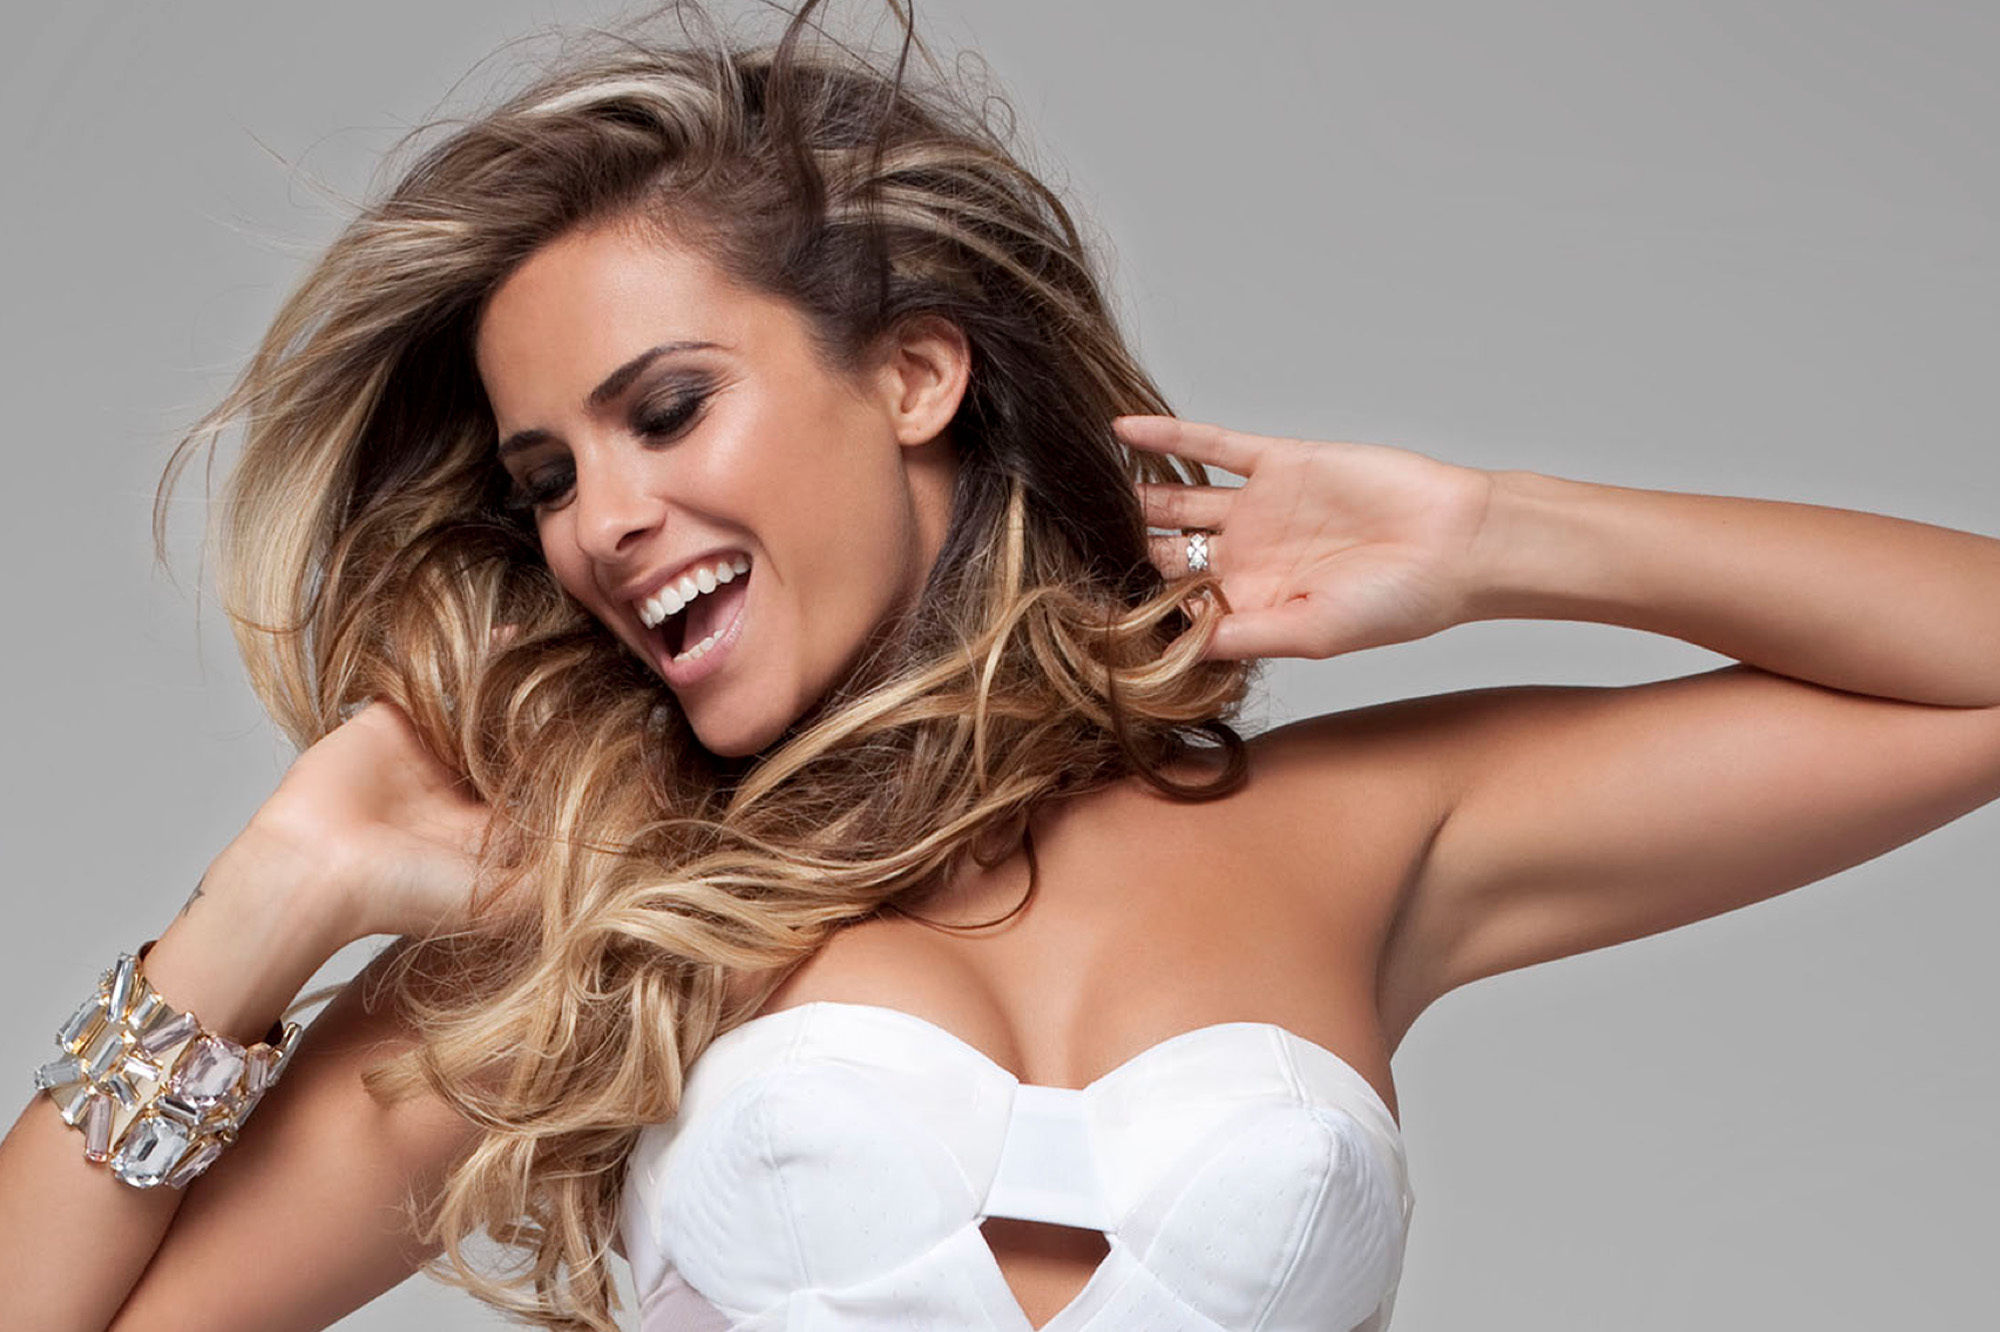 Gangbang clara morgane authoritative